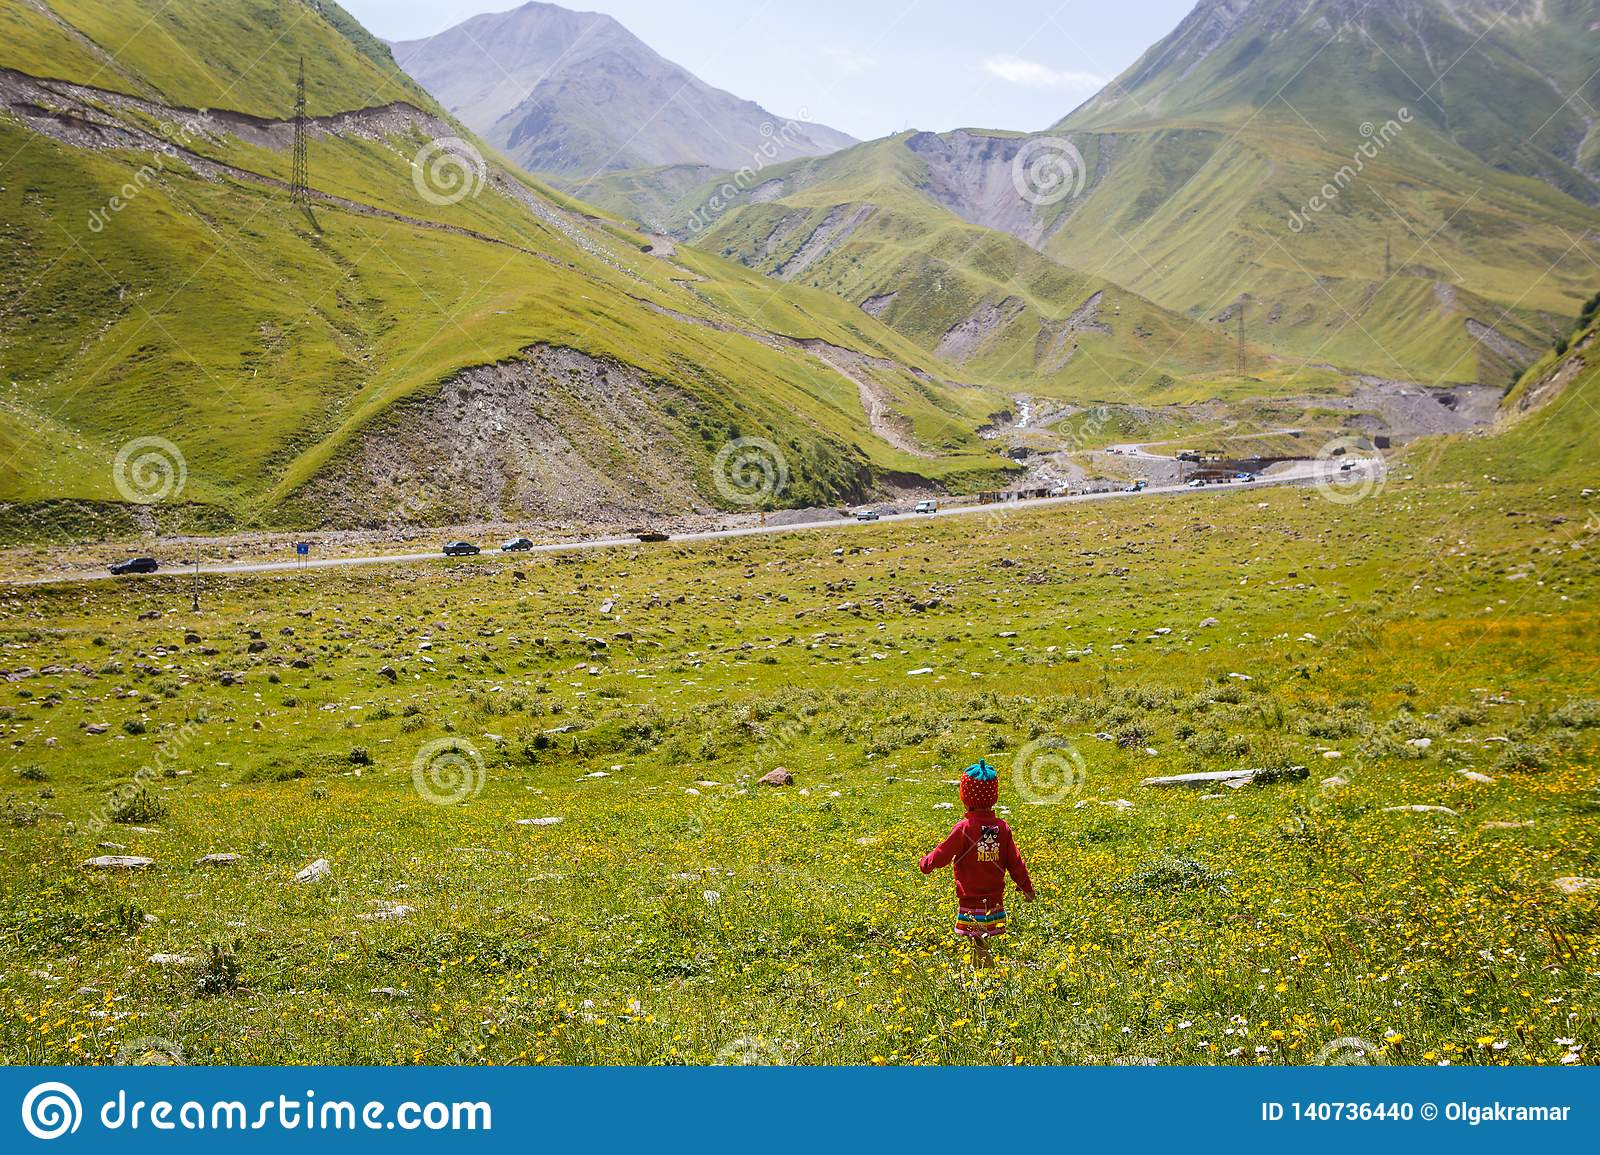 A little girl in a red dress and a knitted cap-strawberry runs on a green field in the mountains.